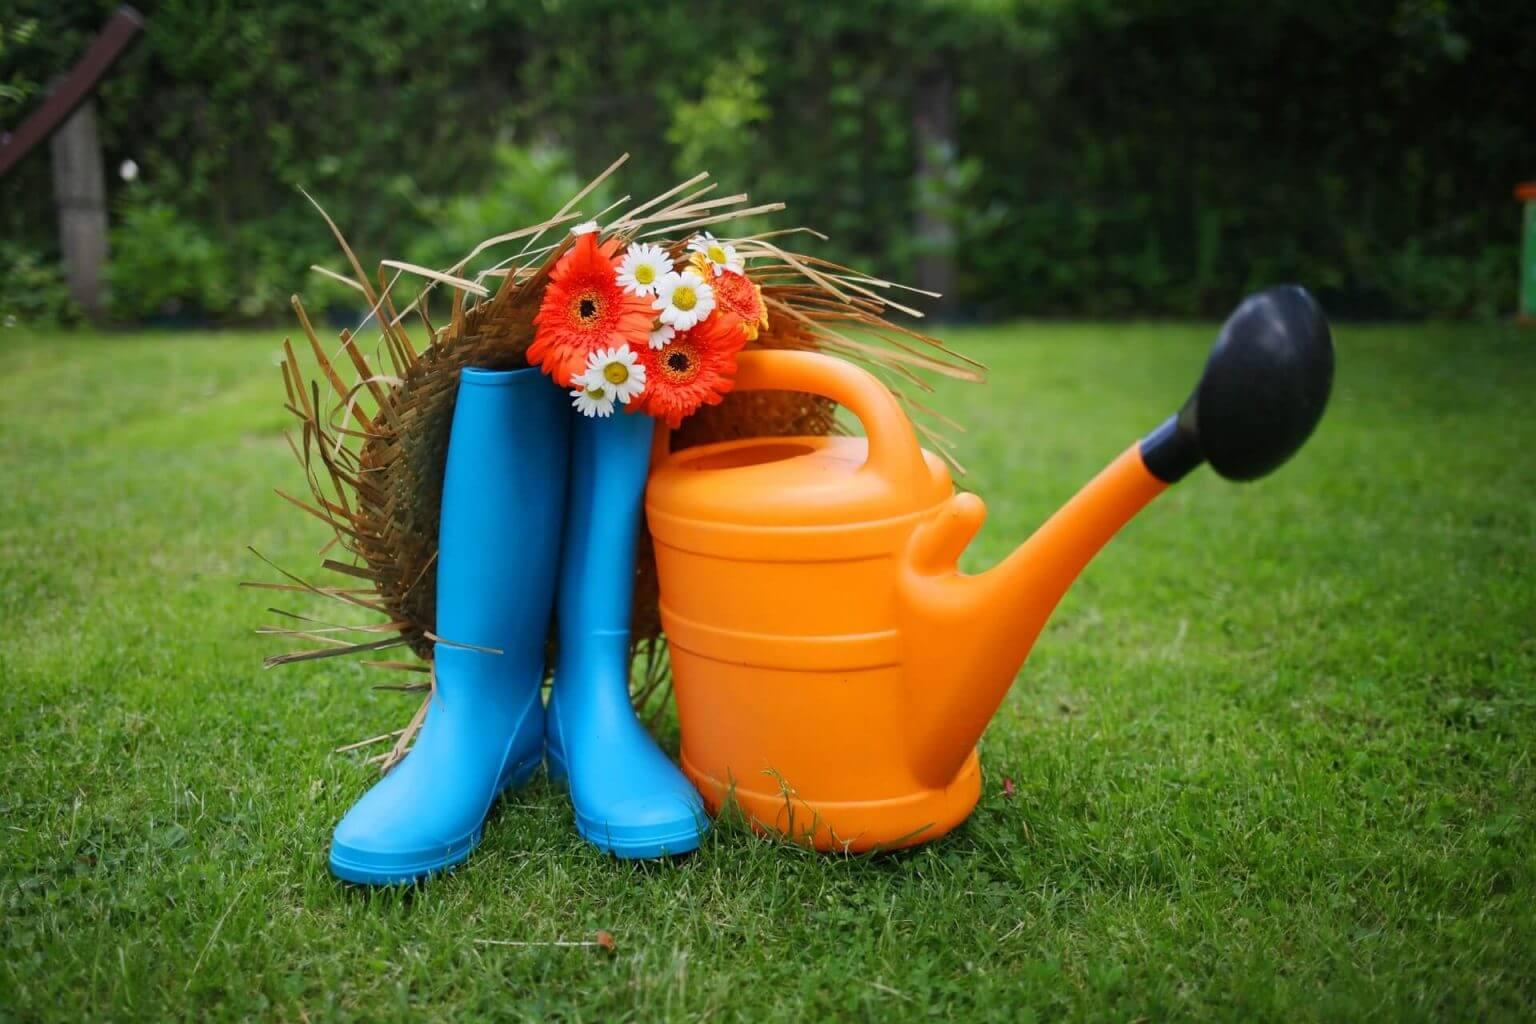 Best Rubber Boots For Farm Work (Men And Women)